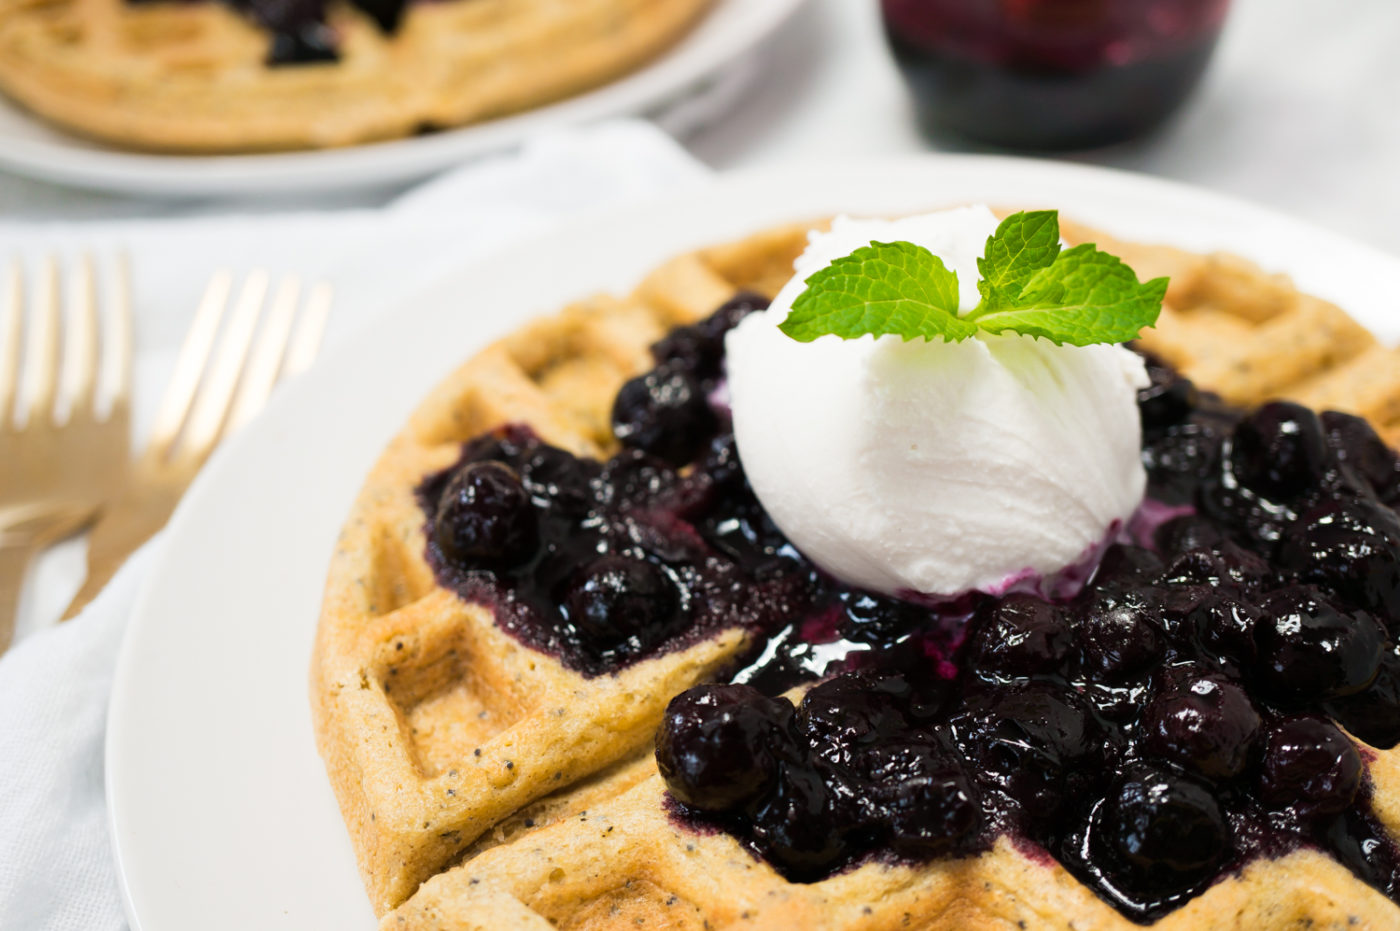 Lemon Poppyseed Waffles with Quick Easy Bluberry Compote